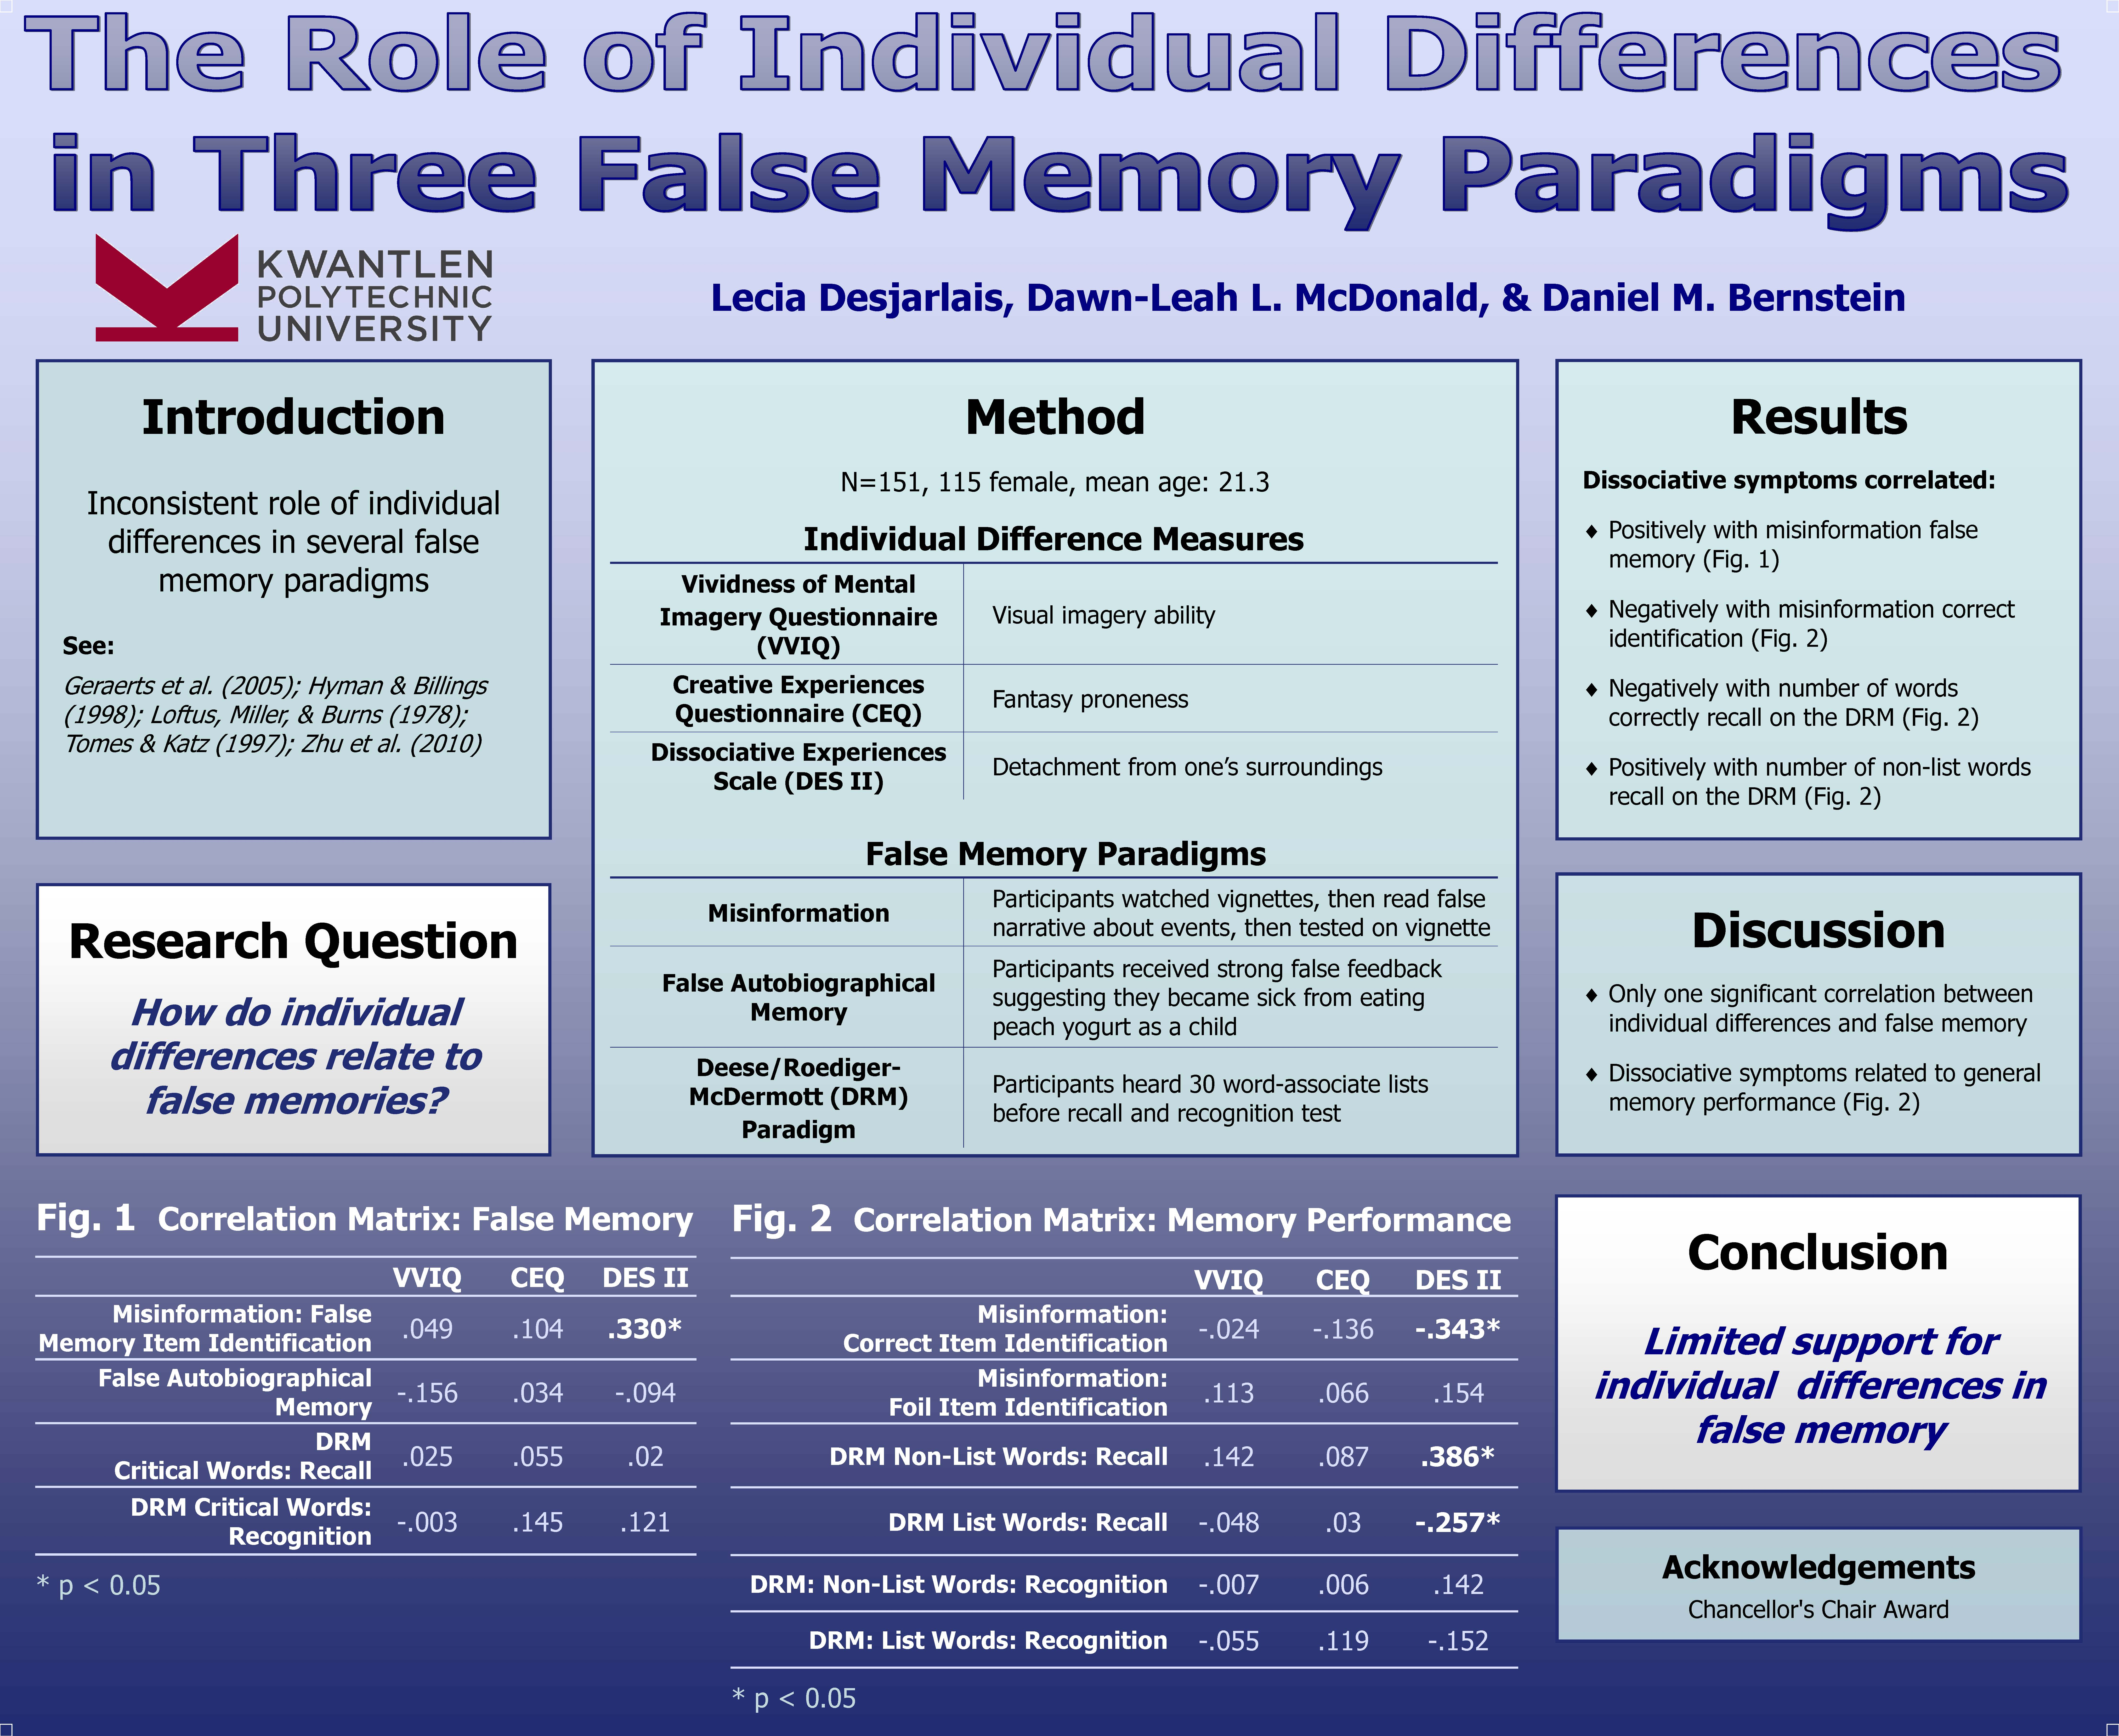 lab report on false memory Lab report on false memory false memory and your imagination diana bunch psy 511 false memory and your imagination the power of suggestion or through a vivid imagination are just a couple ways that psychological research has shown ways in which false memories are created.